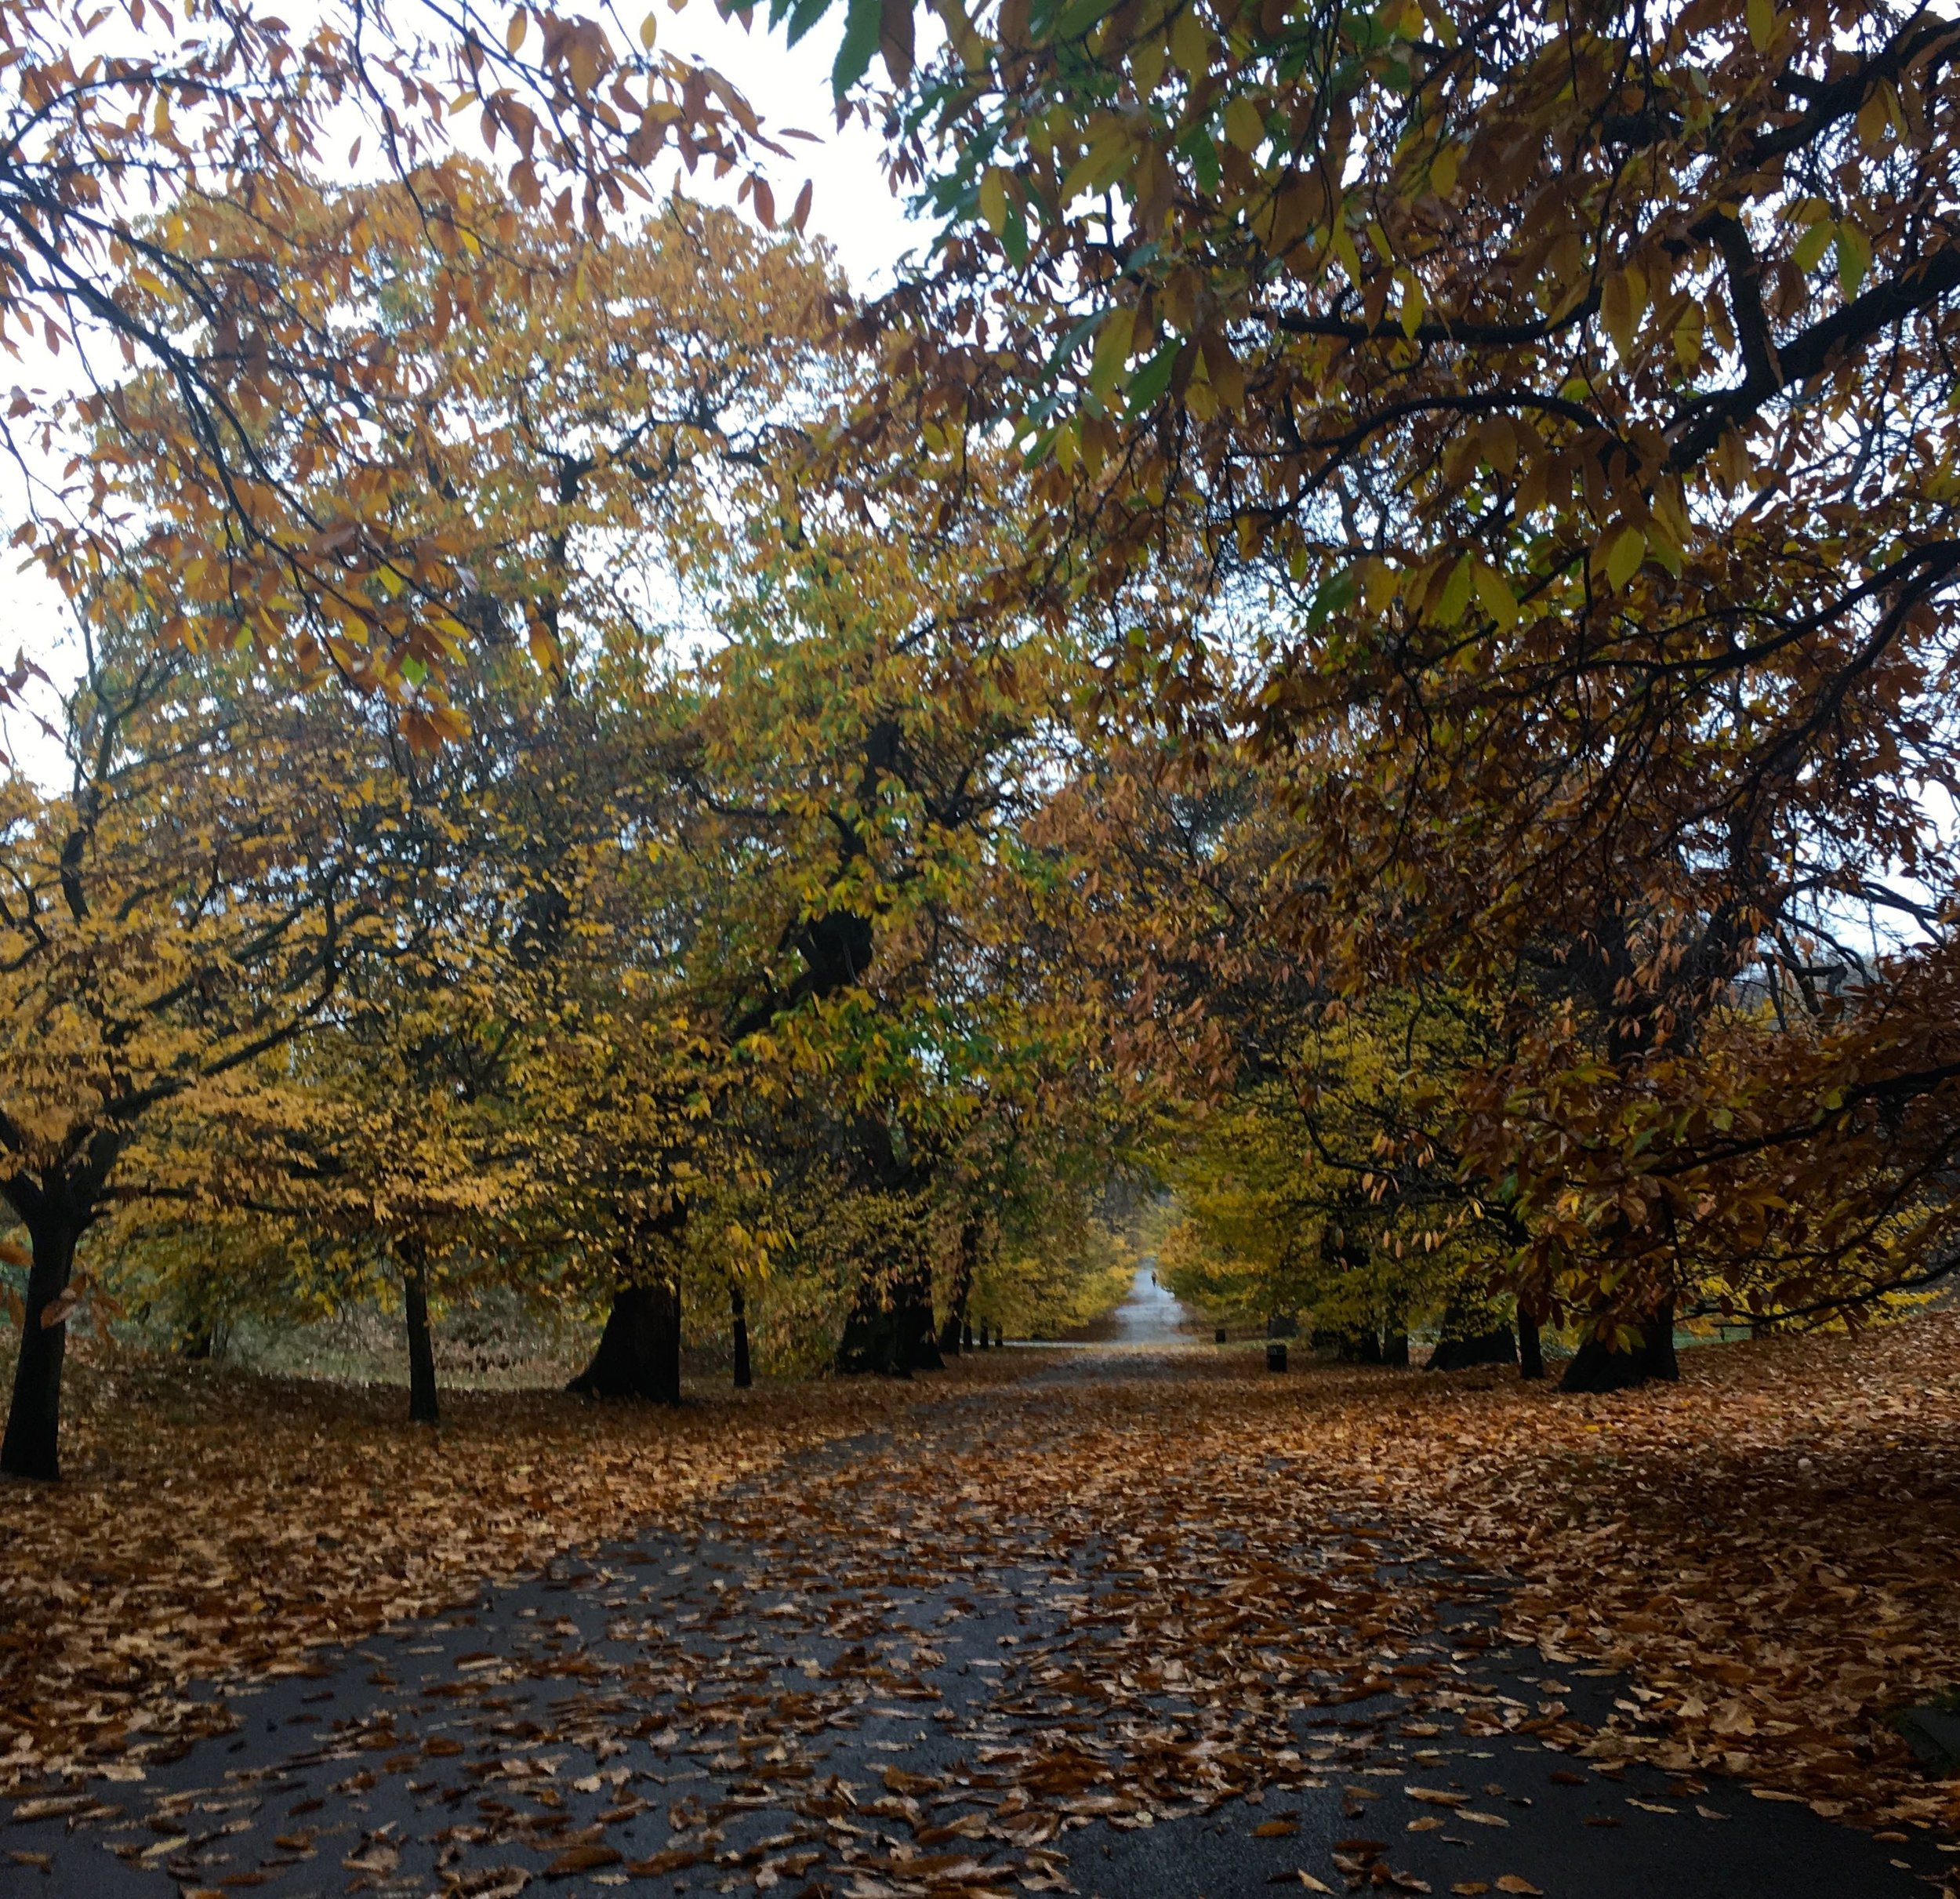 As the month went on the leaves on the trees were less and less